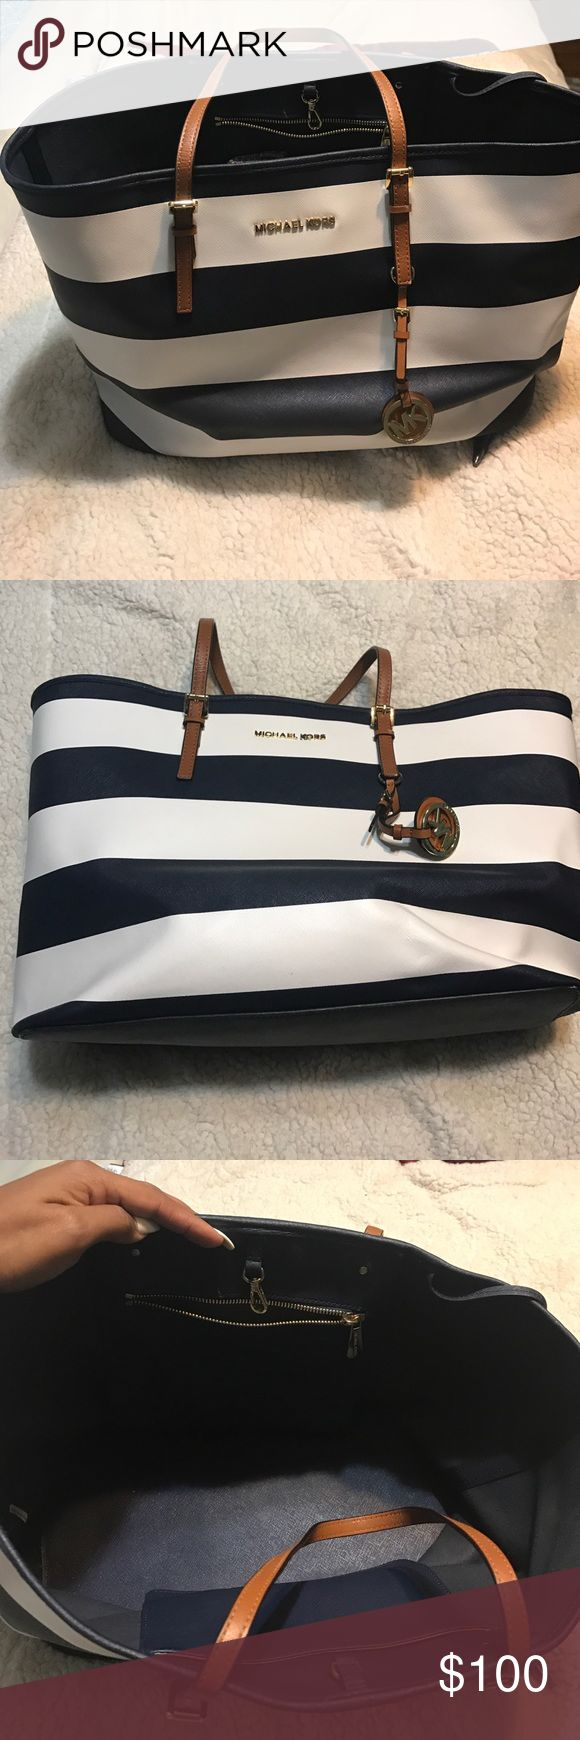 Michael Kors Nautical Blue and White Tote bag Beautiful Michael Kors Nautical Tote Bag in Navy Blue and white. Lovely for the beach, work or just a busy lady needing a cute purse to Tote around her every day essentials. negotiable so send me an offer and this beautiful bag can be yours Michael Kors Bags